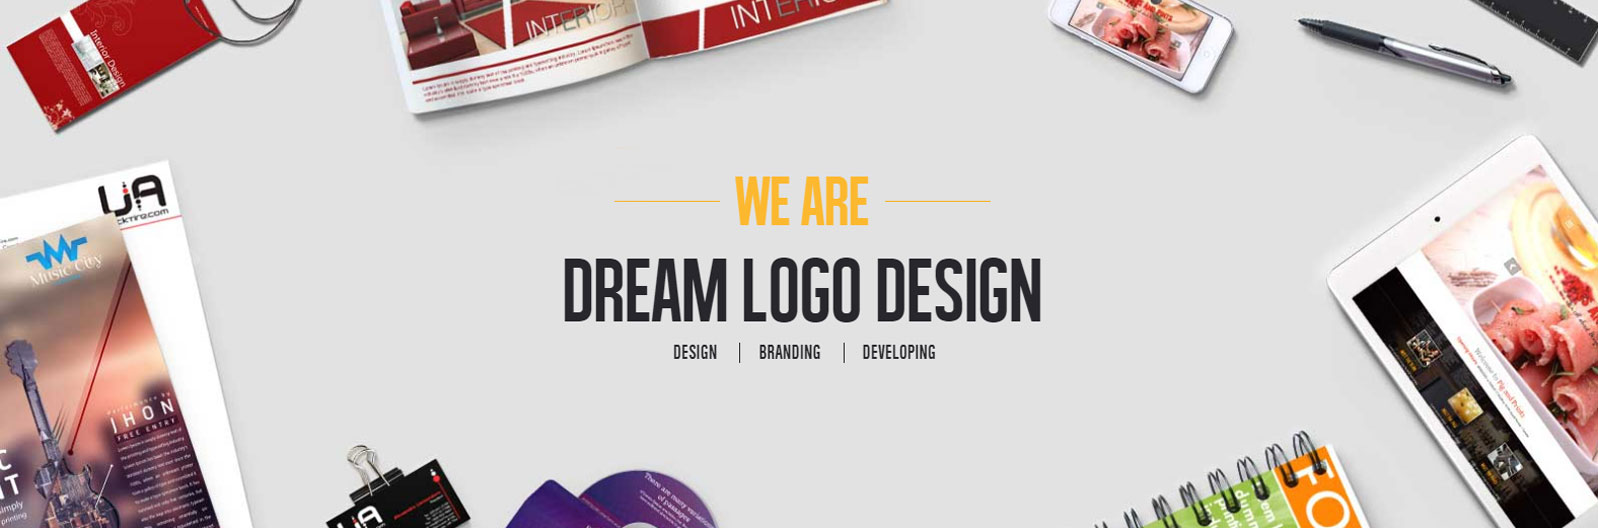 Tropical Flowers & Perfume River Landscaping Logo Design – DreamLogoDesign